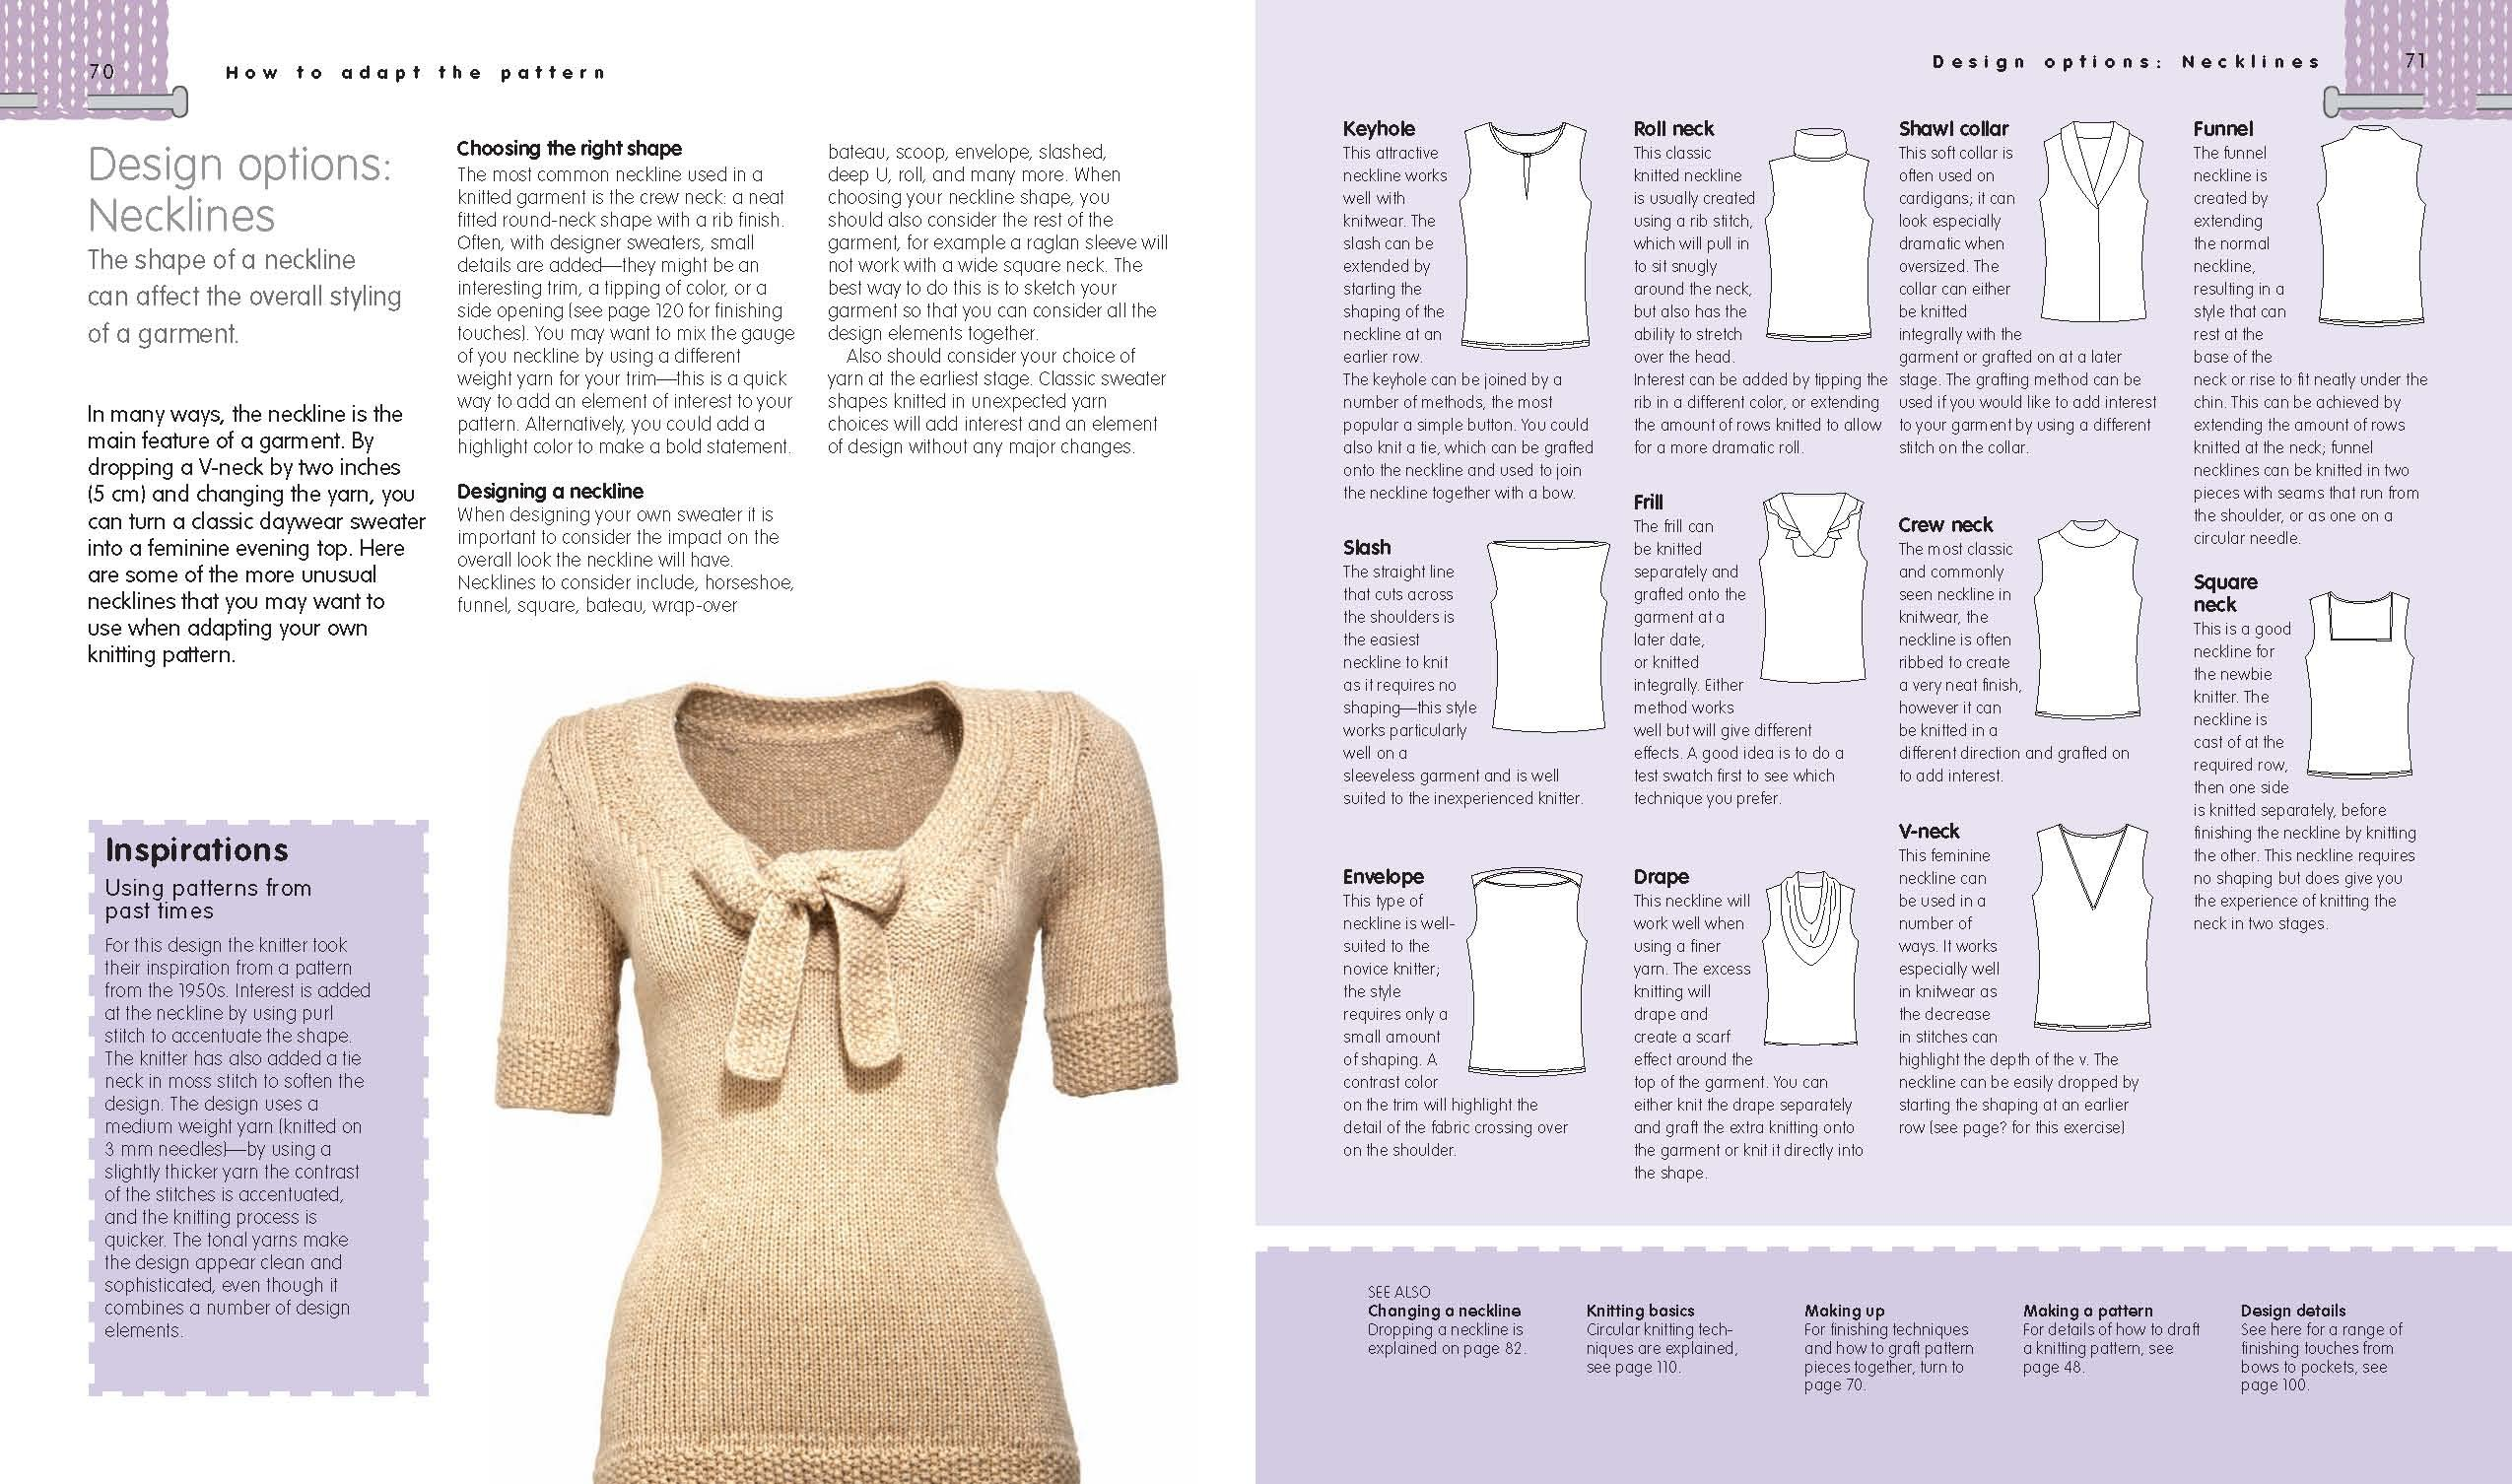 How to Use, Adapt, and Design Knitting Patterns: How to knit exactly ...